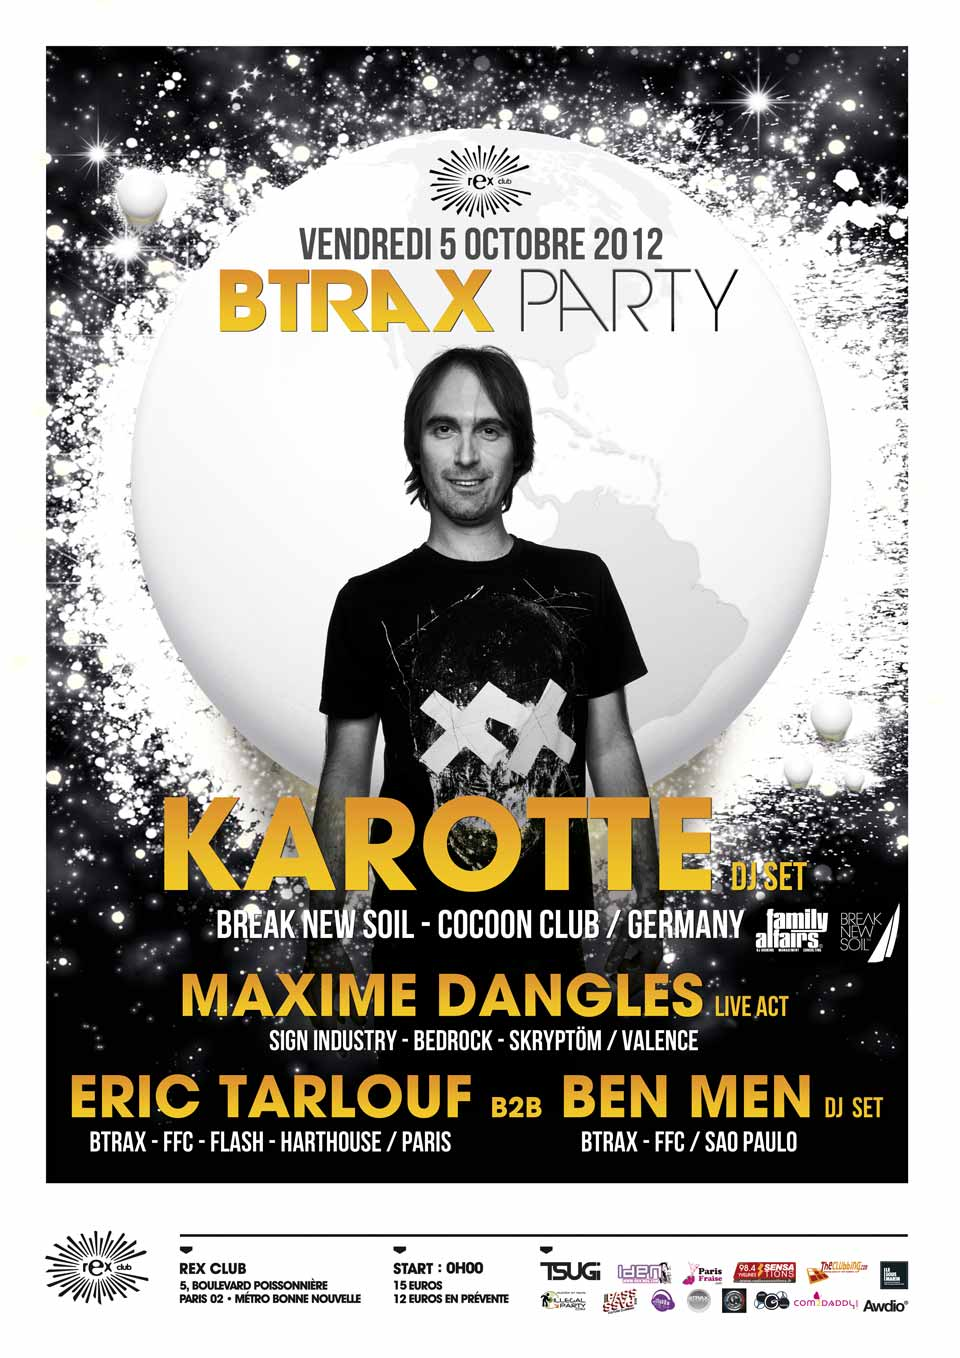 BTRAX party 05.10.2012